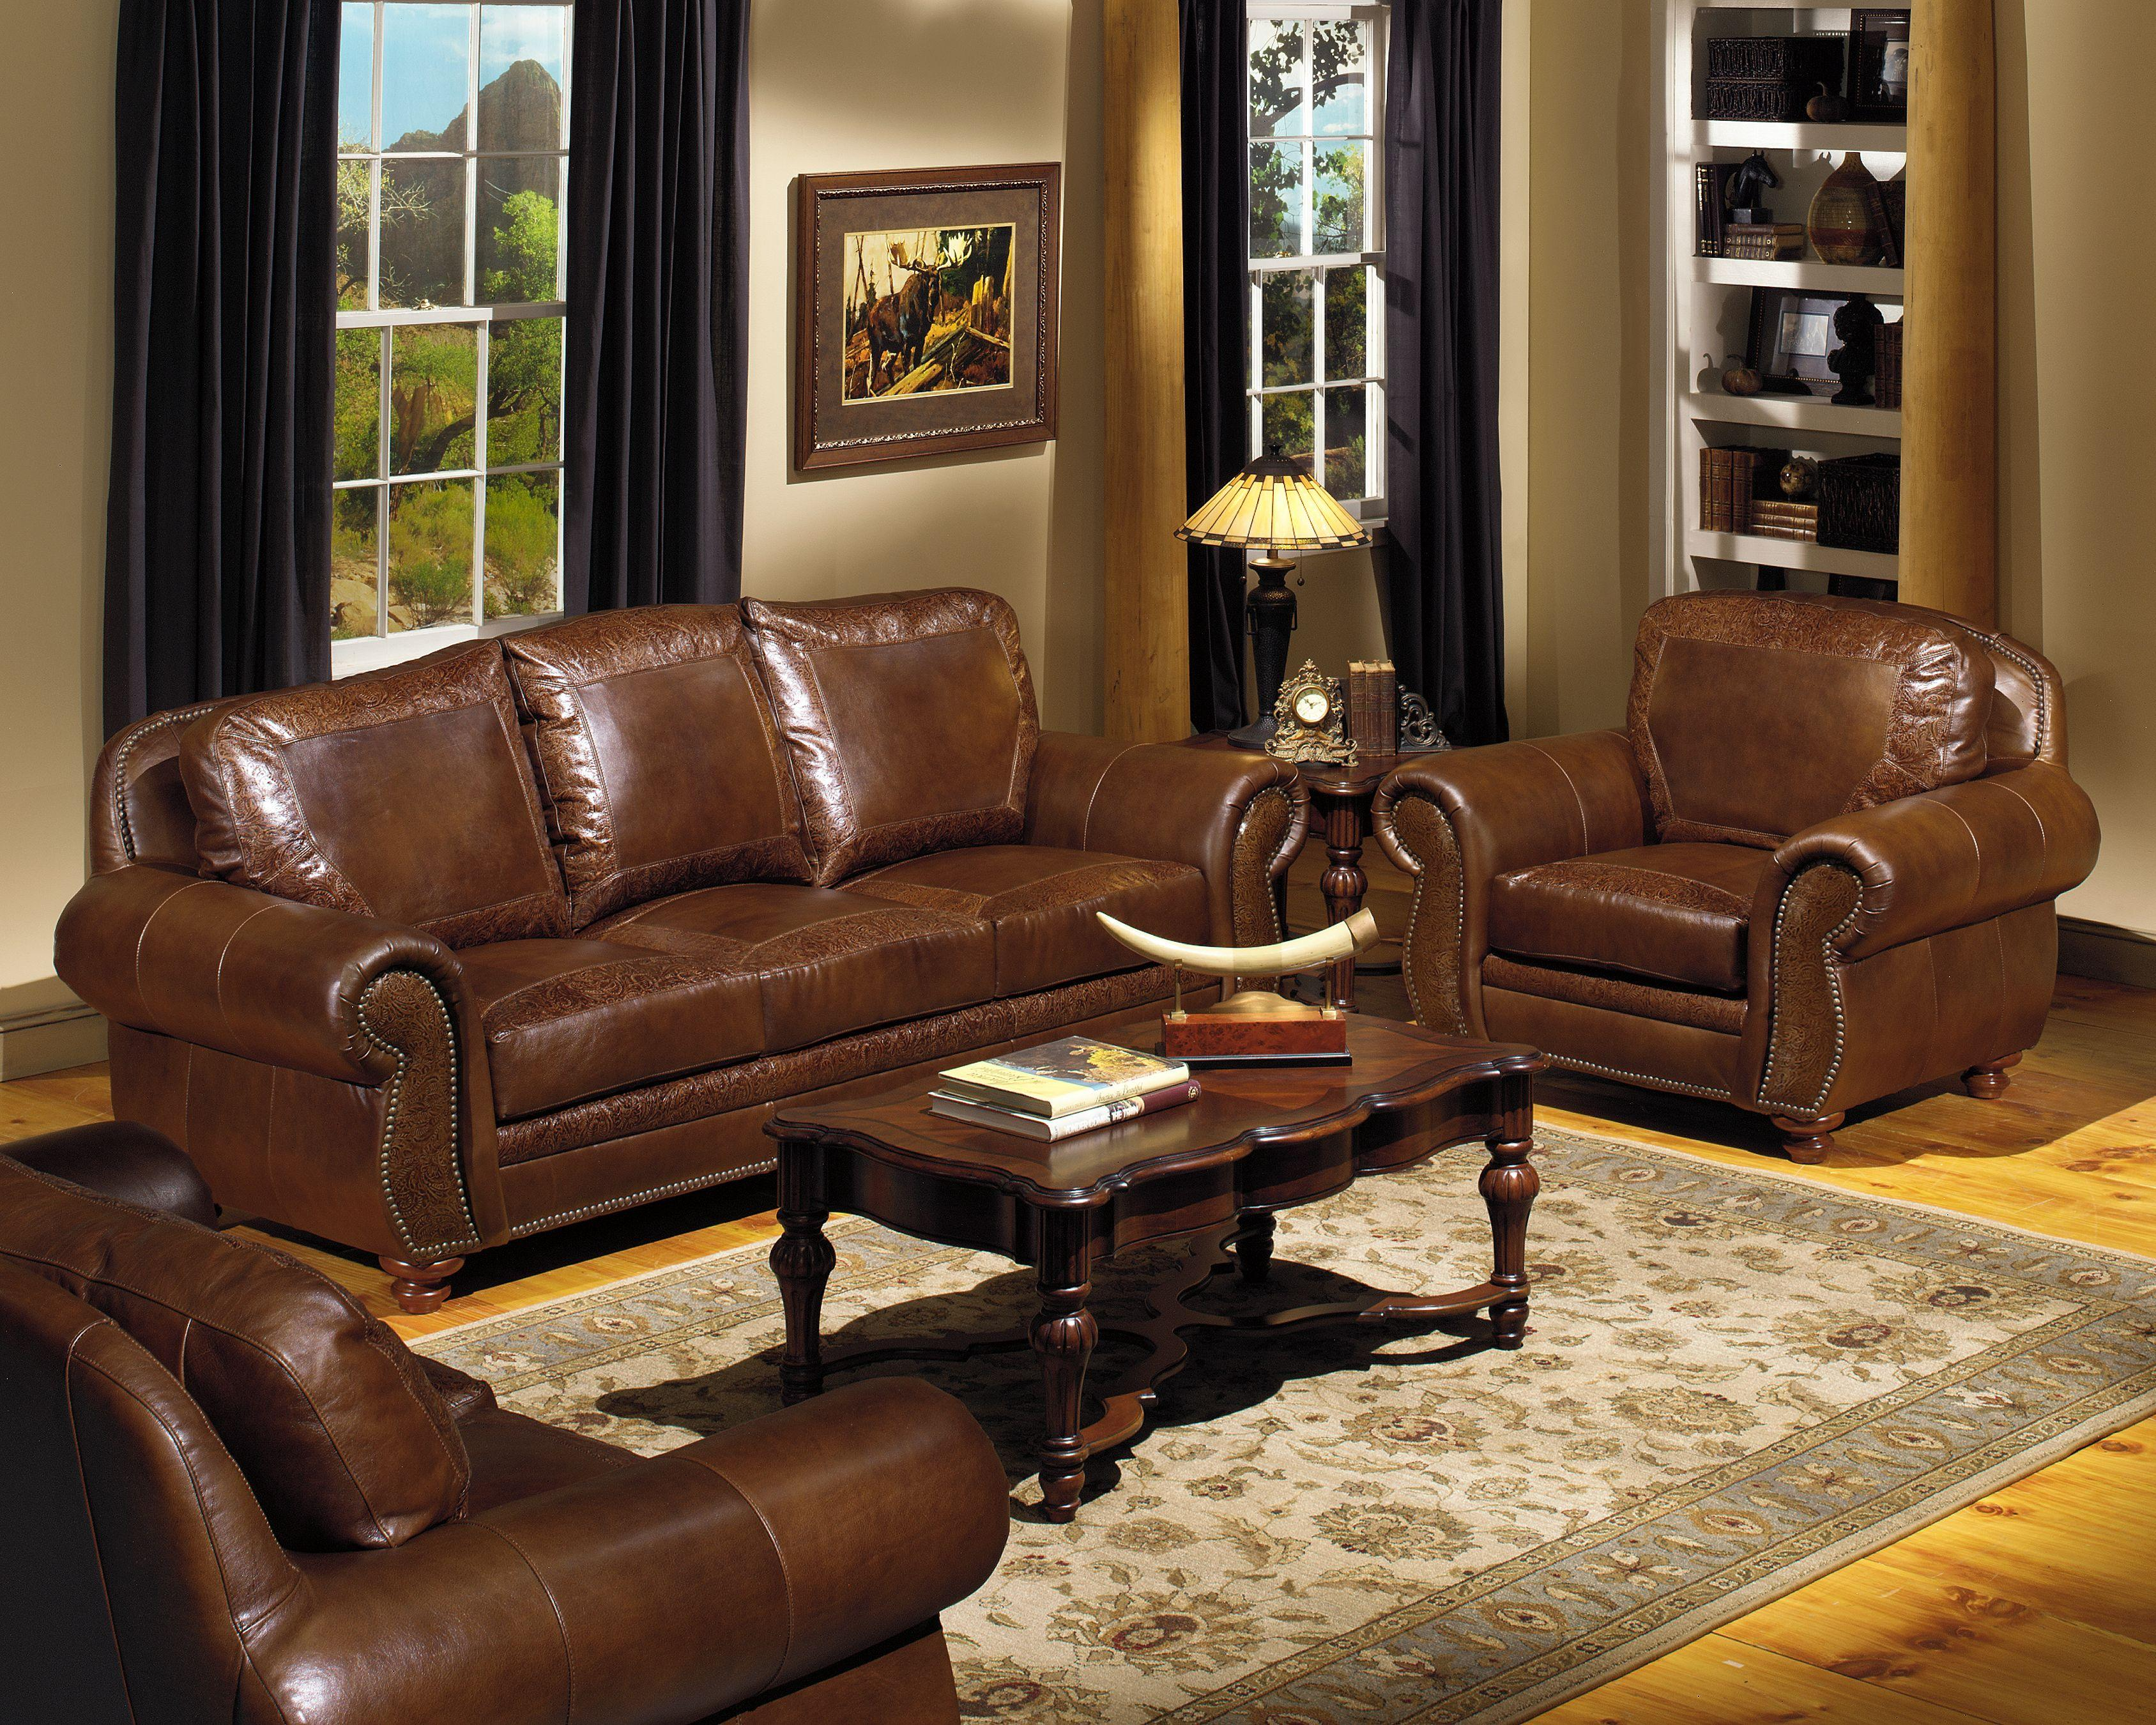 usa premium leather 8555 stationary living room group dhi dream home interiors 18 fotos m 246 bel 400 earnest